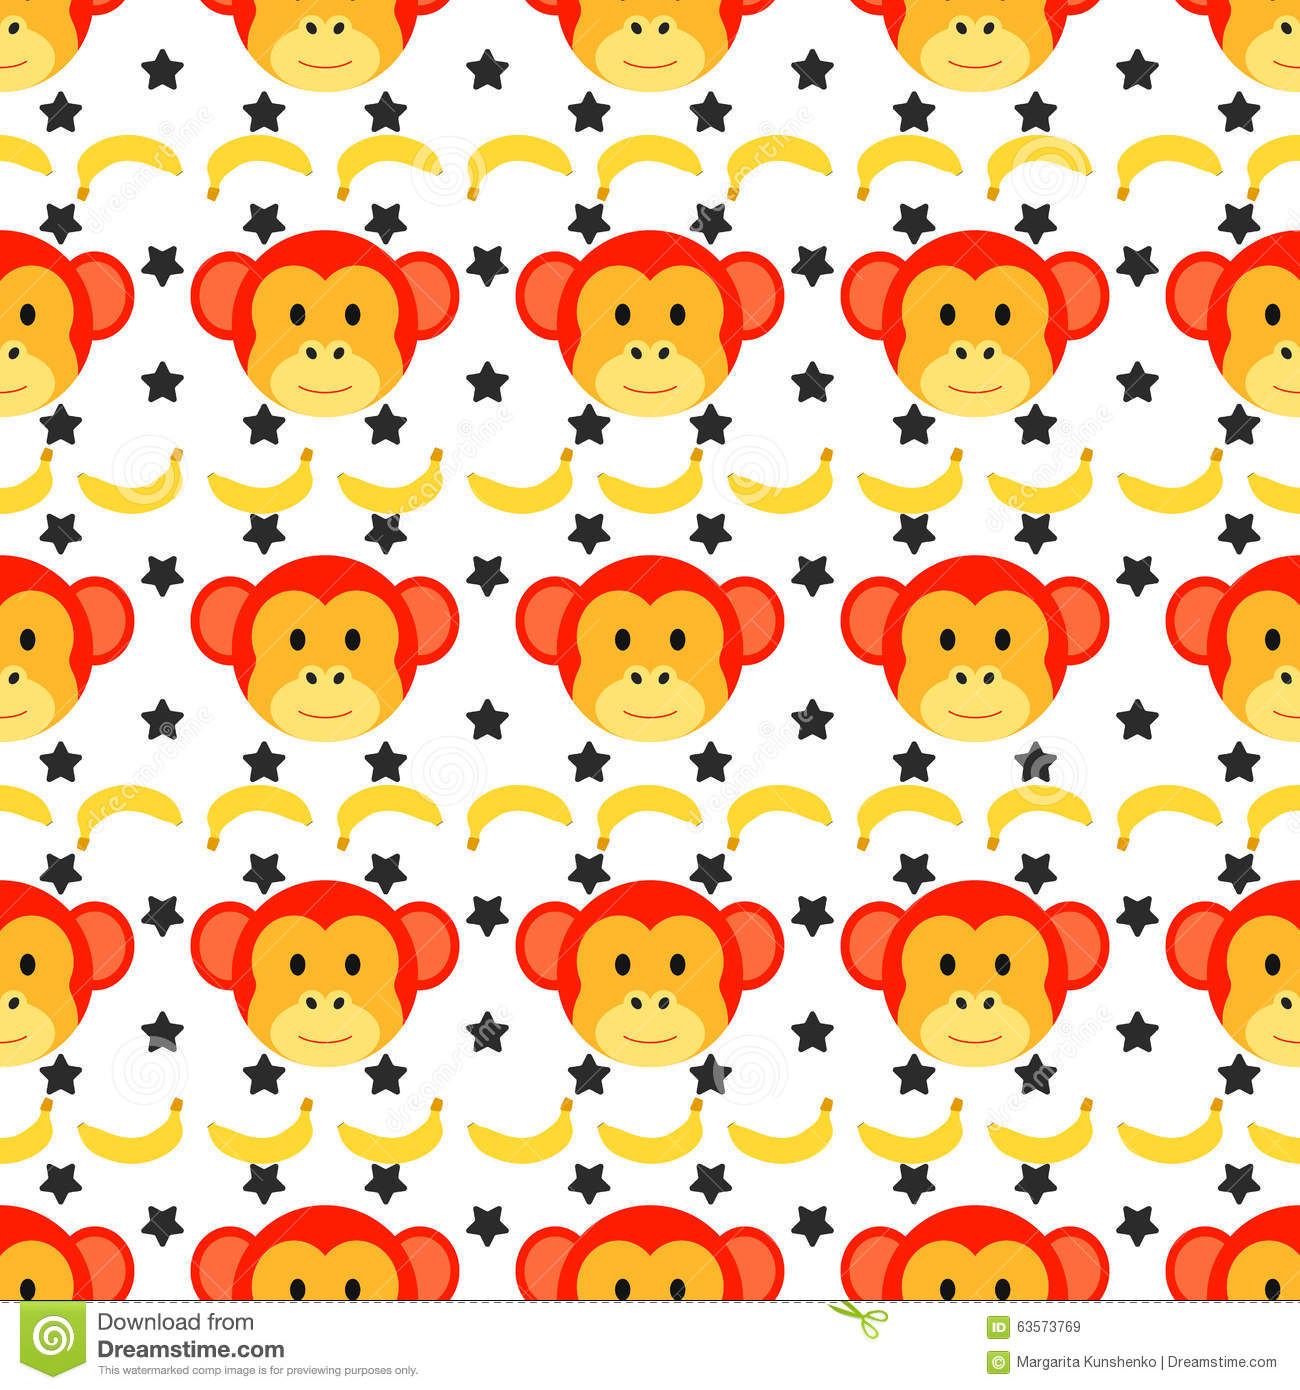 Seamless Doodle Monkey Pattern Stock Vector - Image: 63573769